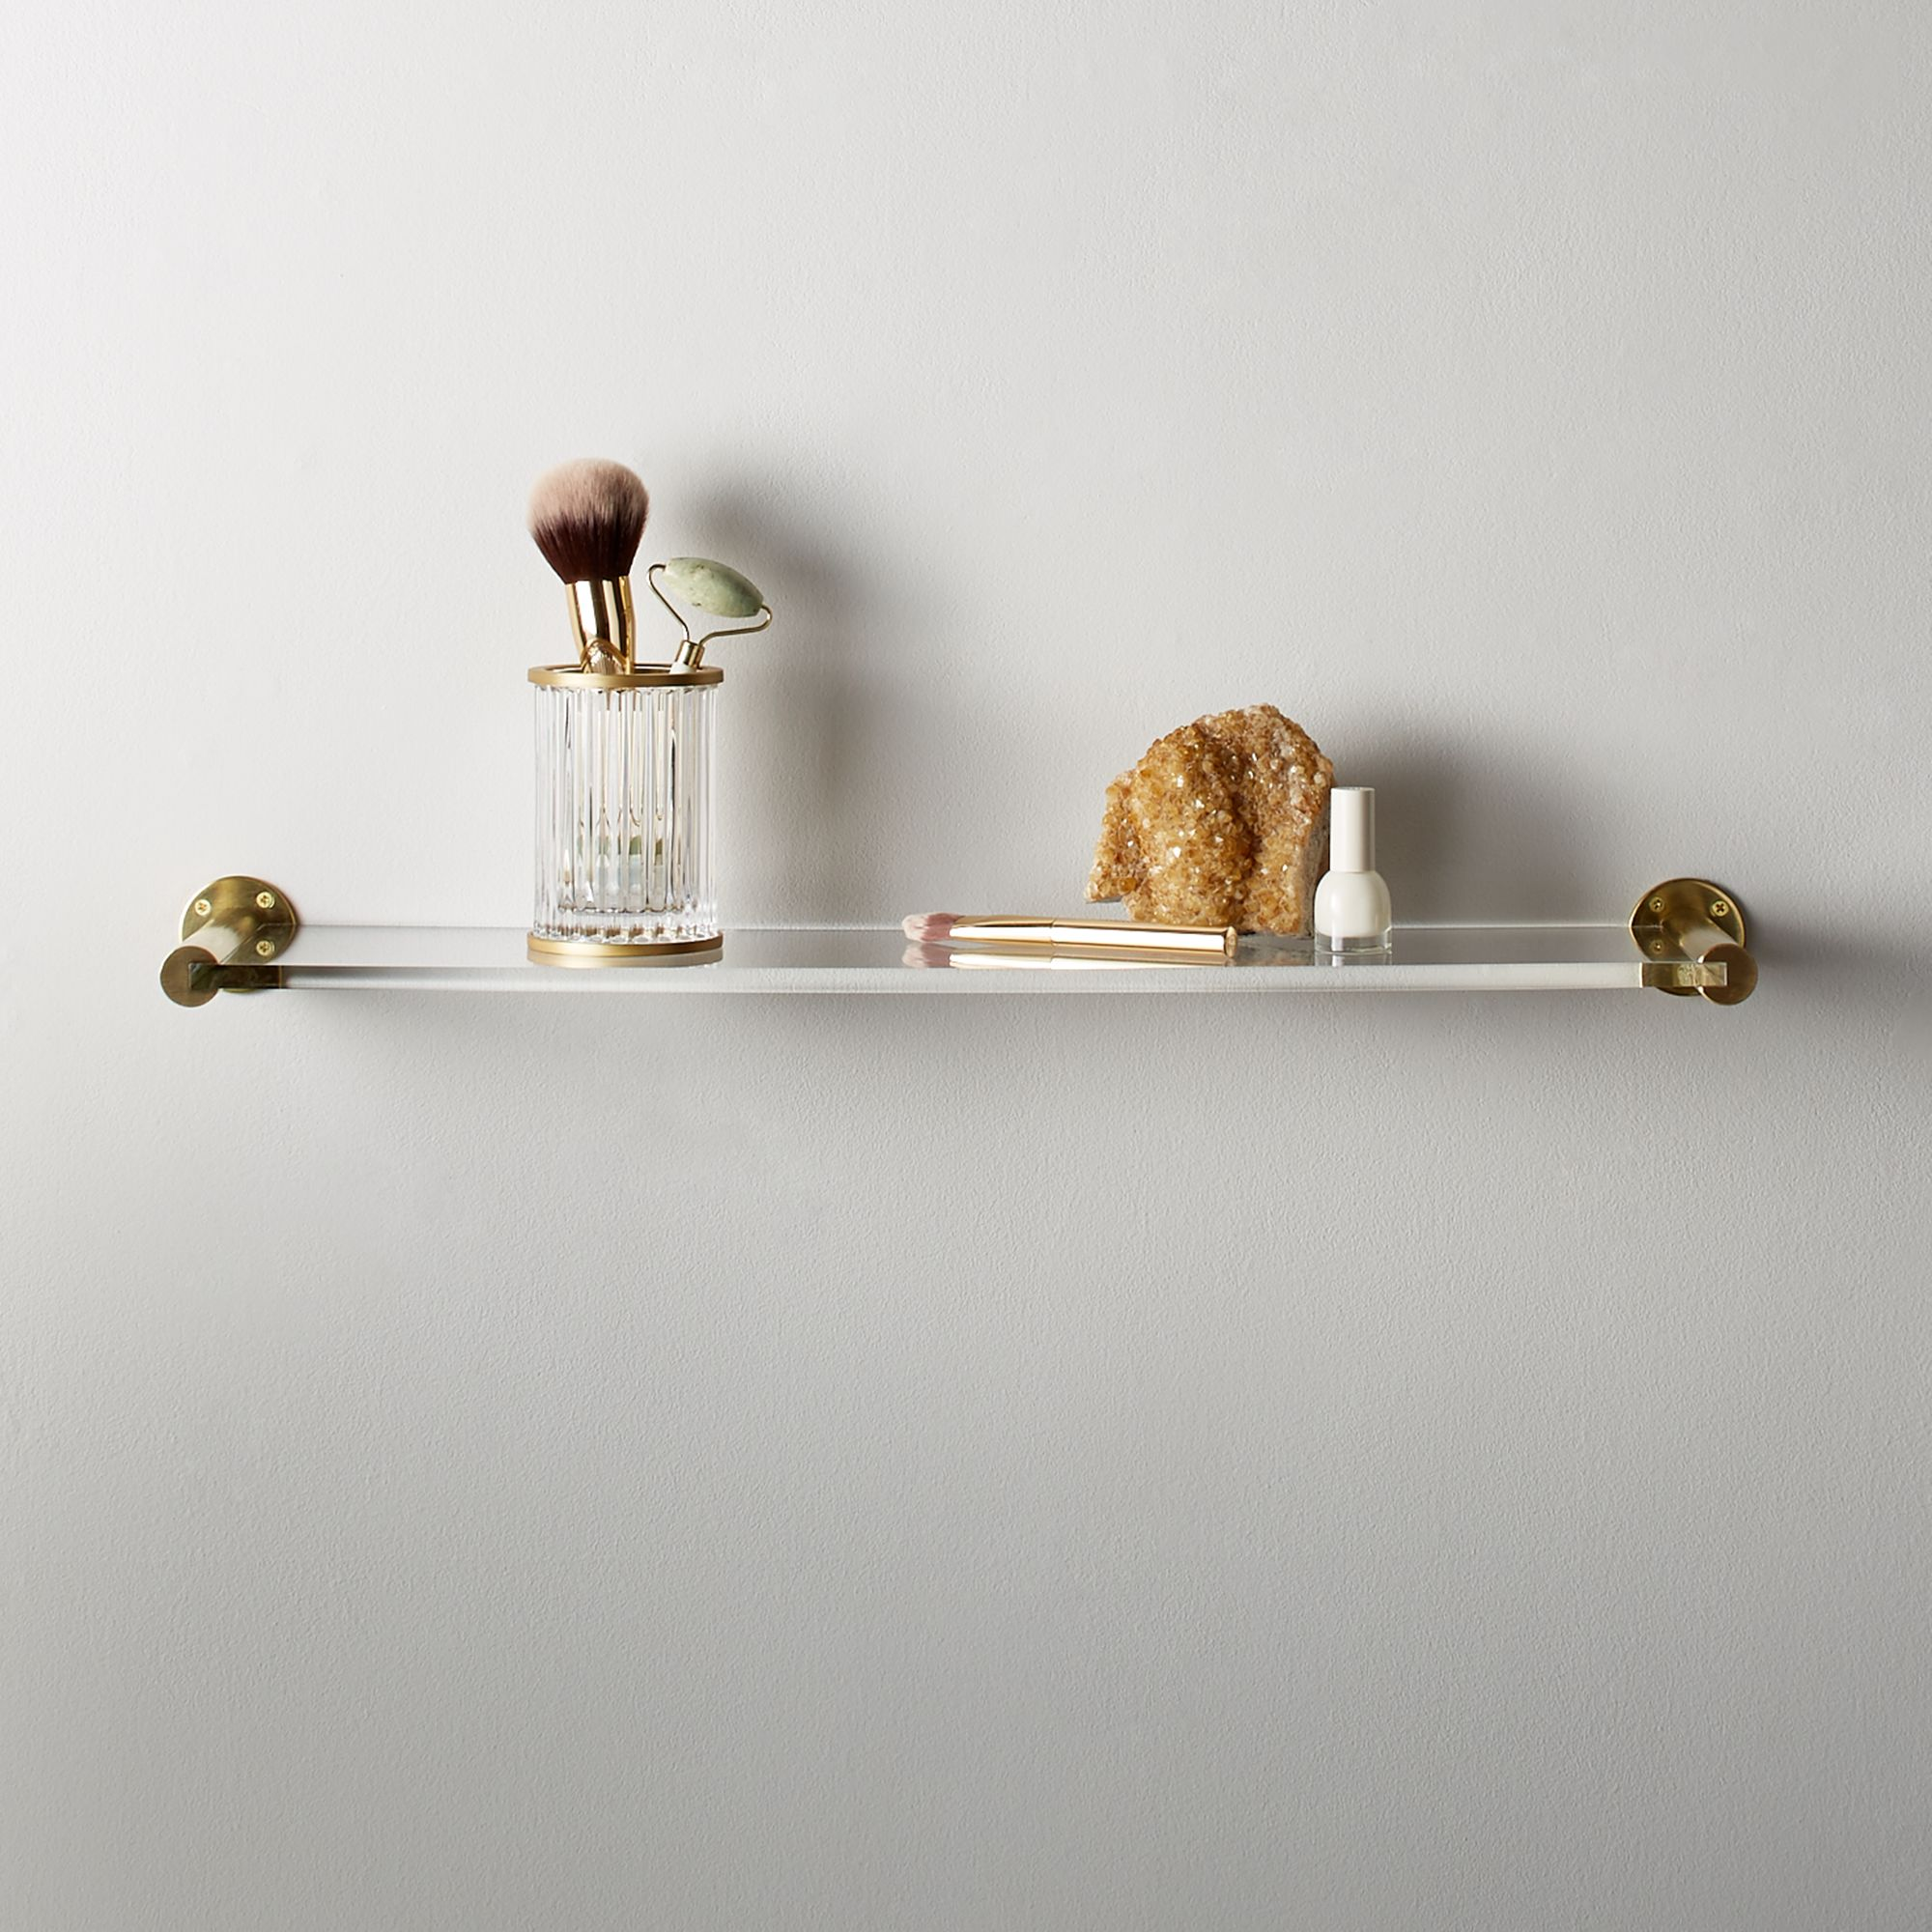 Brass and Acrylic Wall Shelf